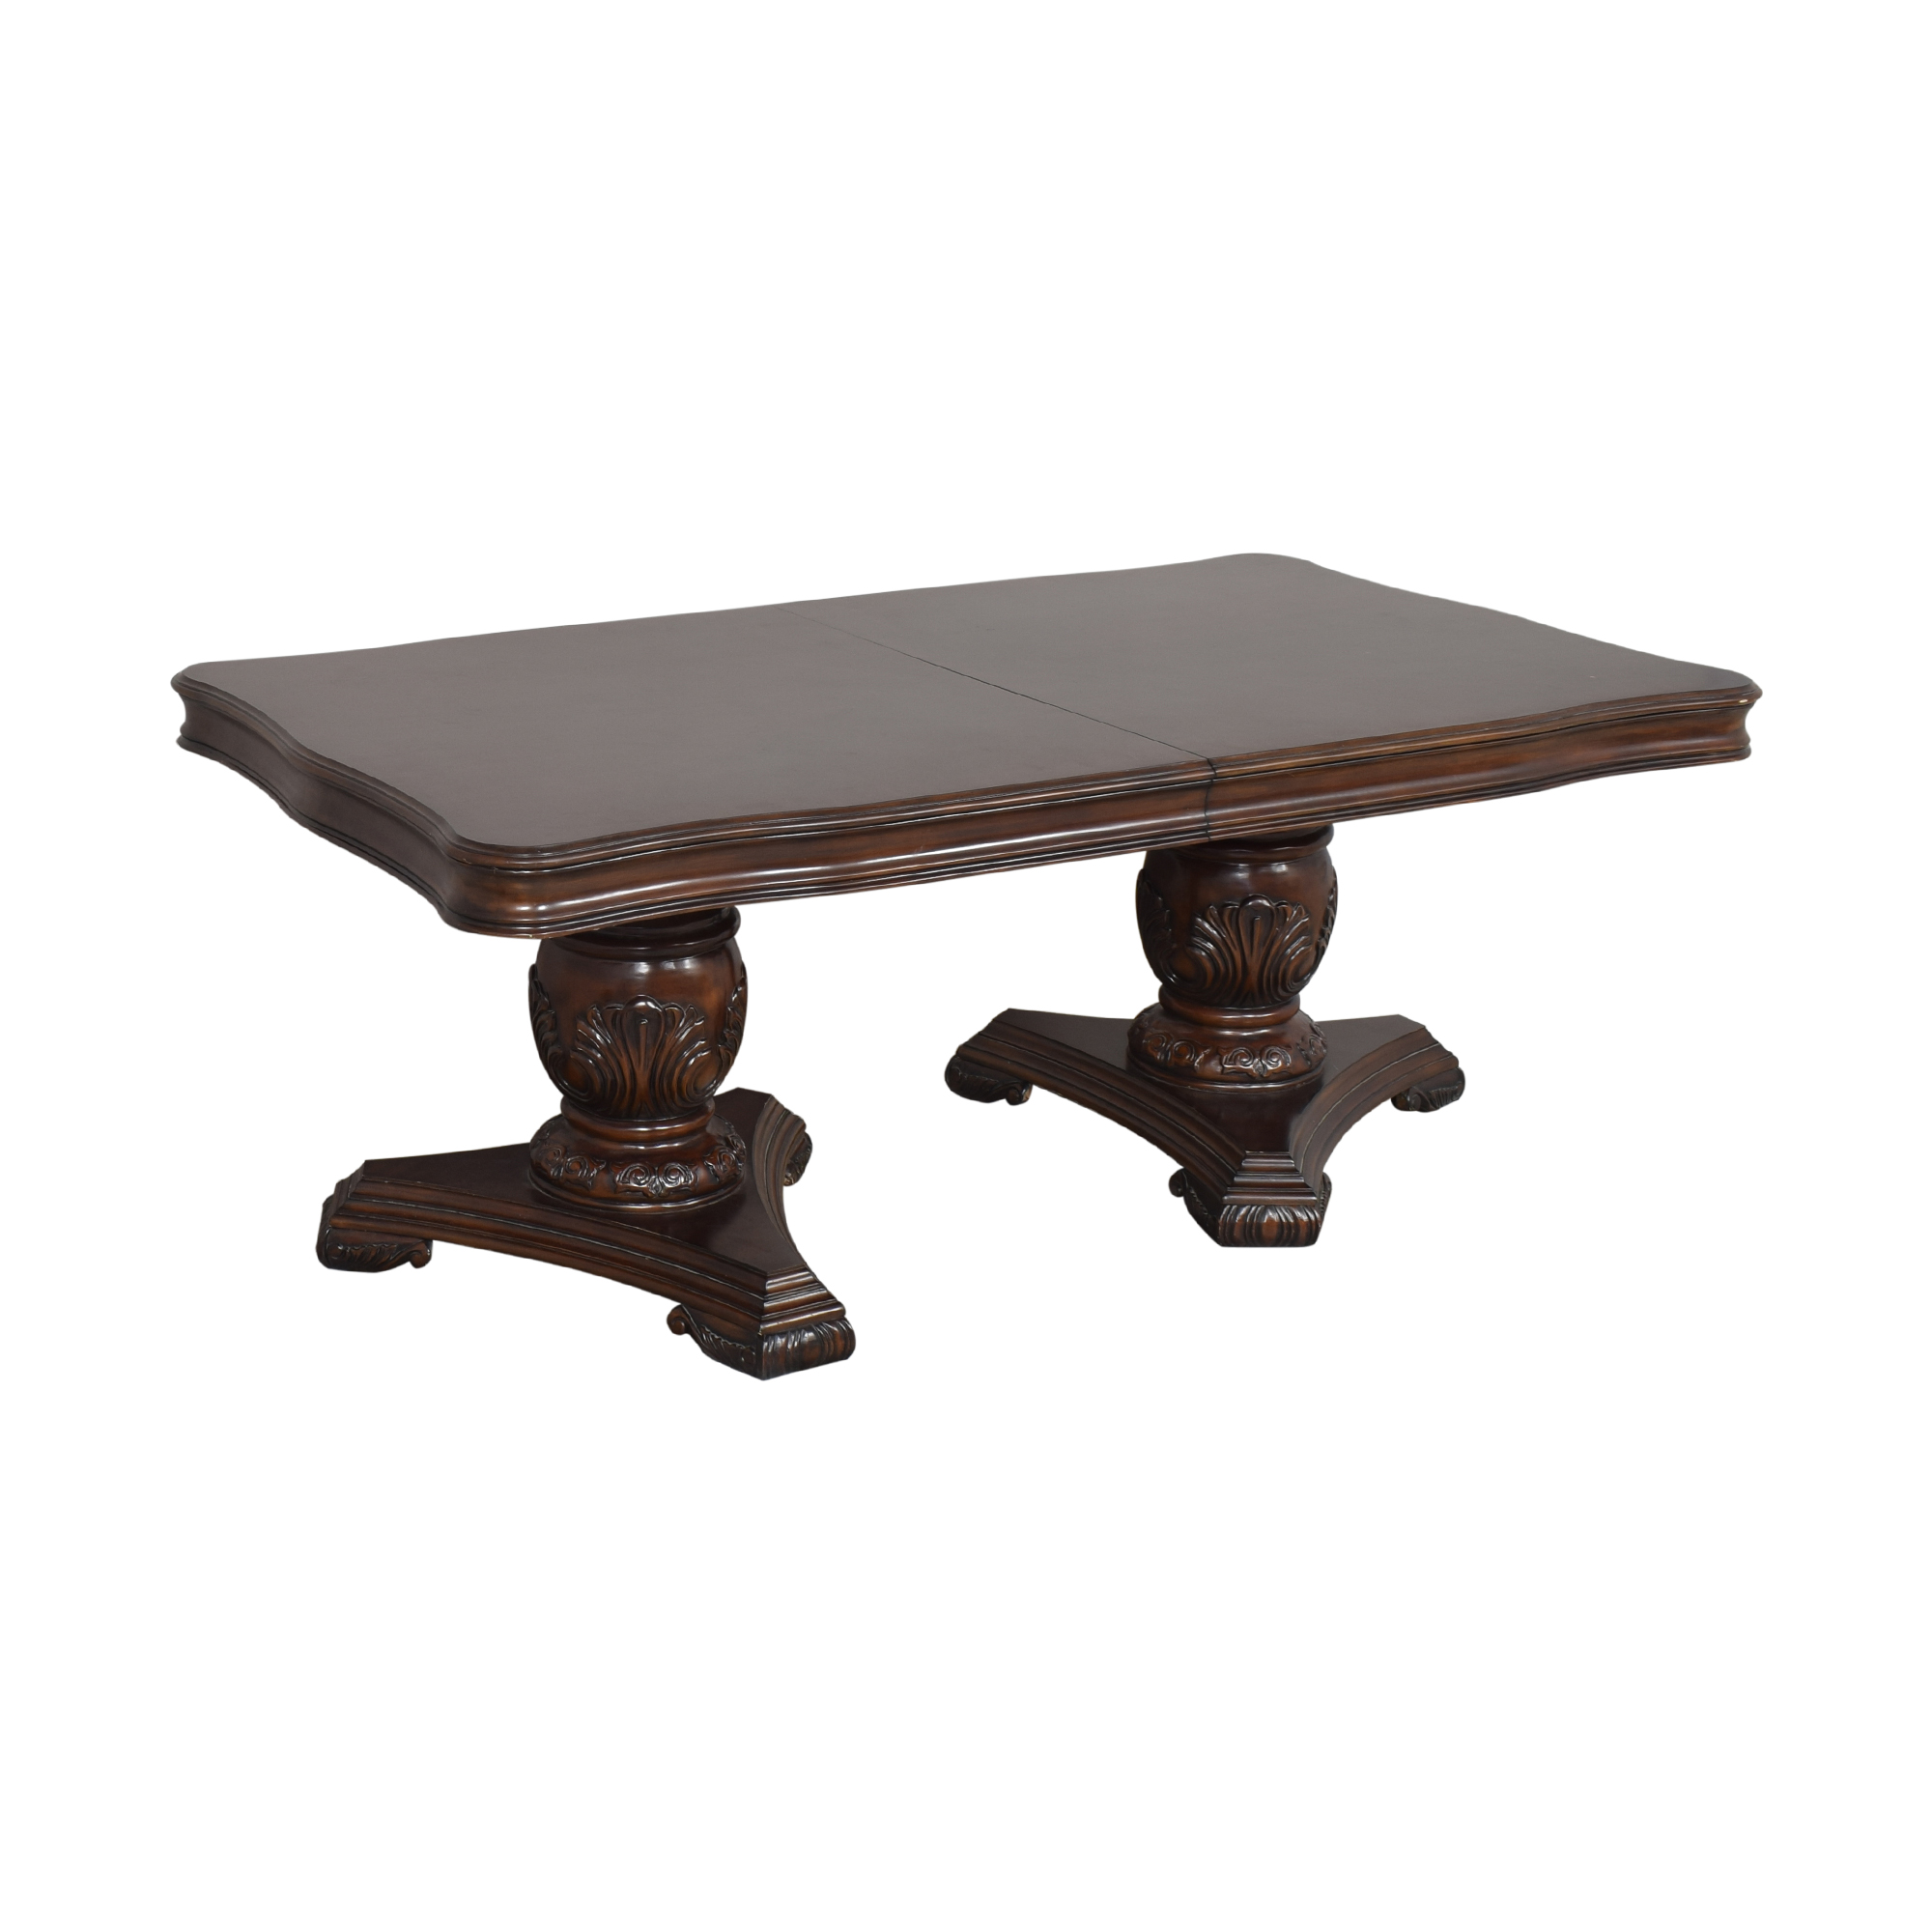 Raymour & Flanigan Raymour & Flanigan Double Pedestal Dining Table dimensions